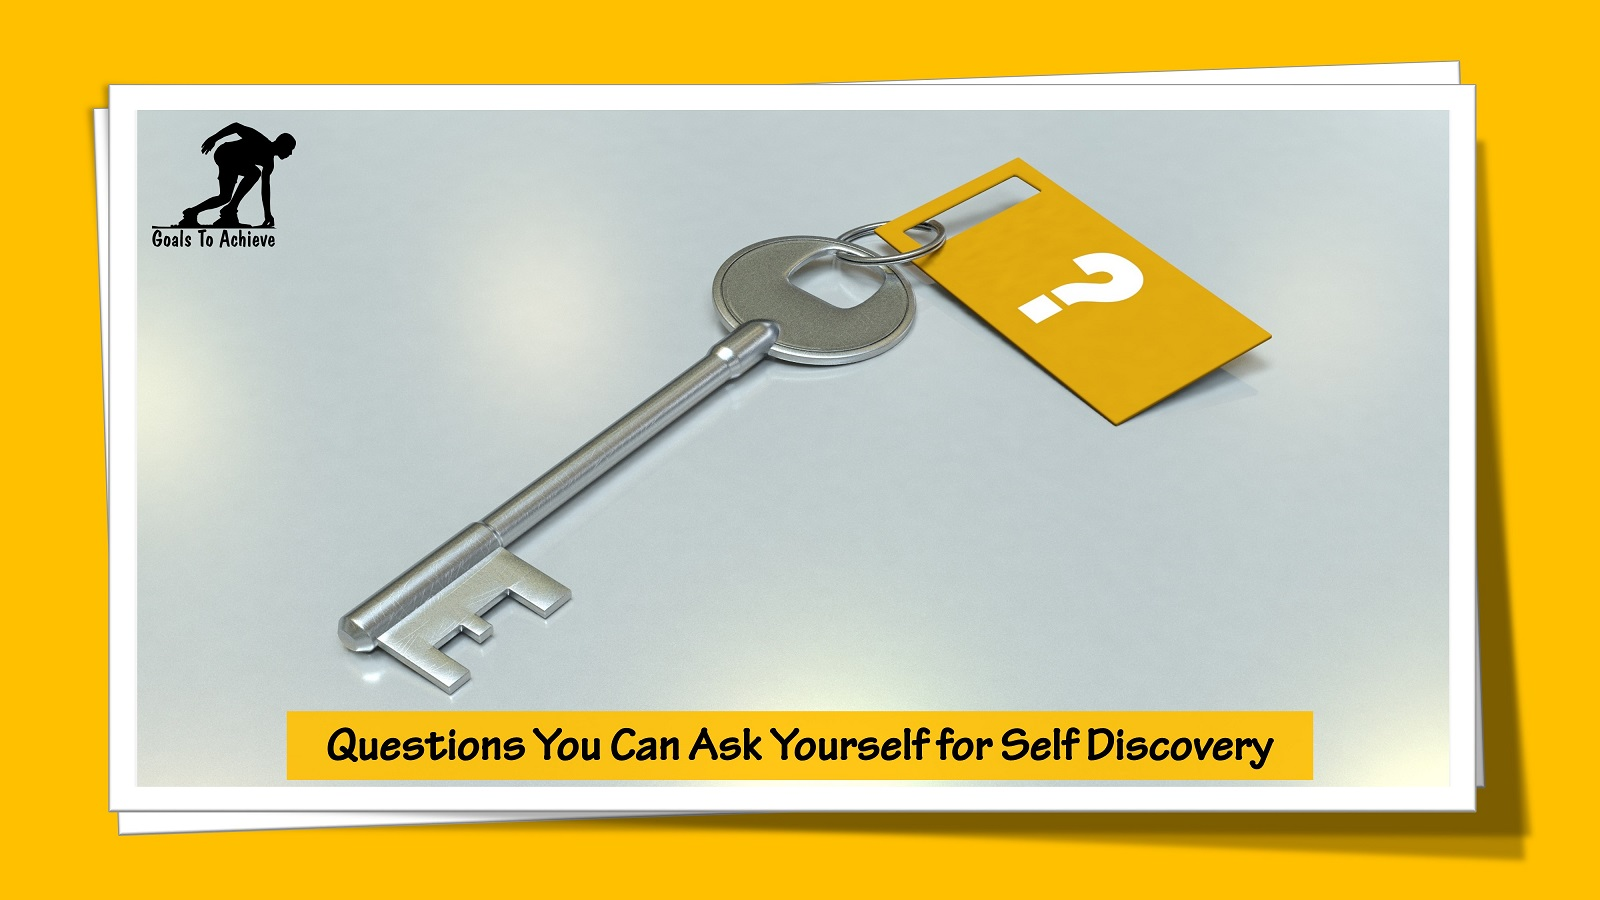 Questions You Can Ask Yourself for Self Discovery